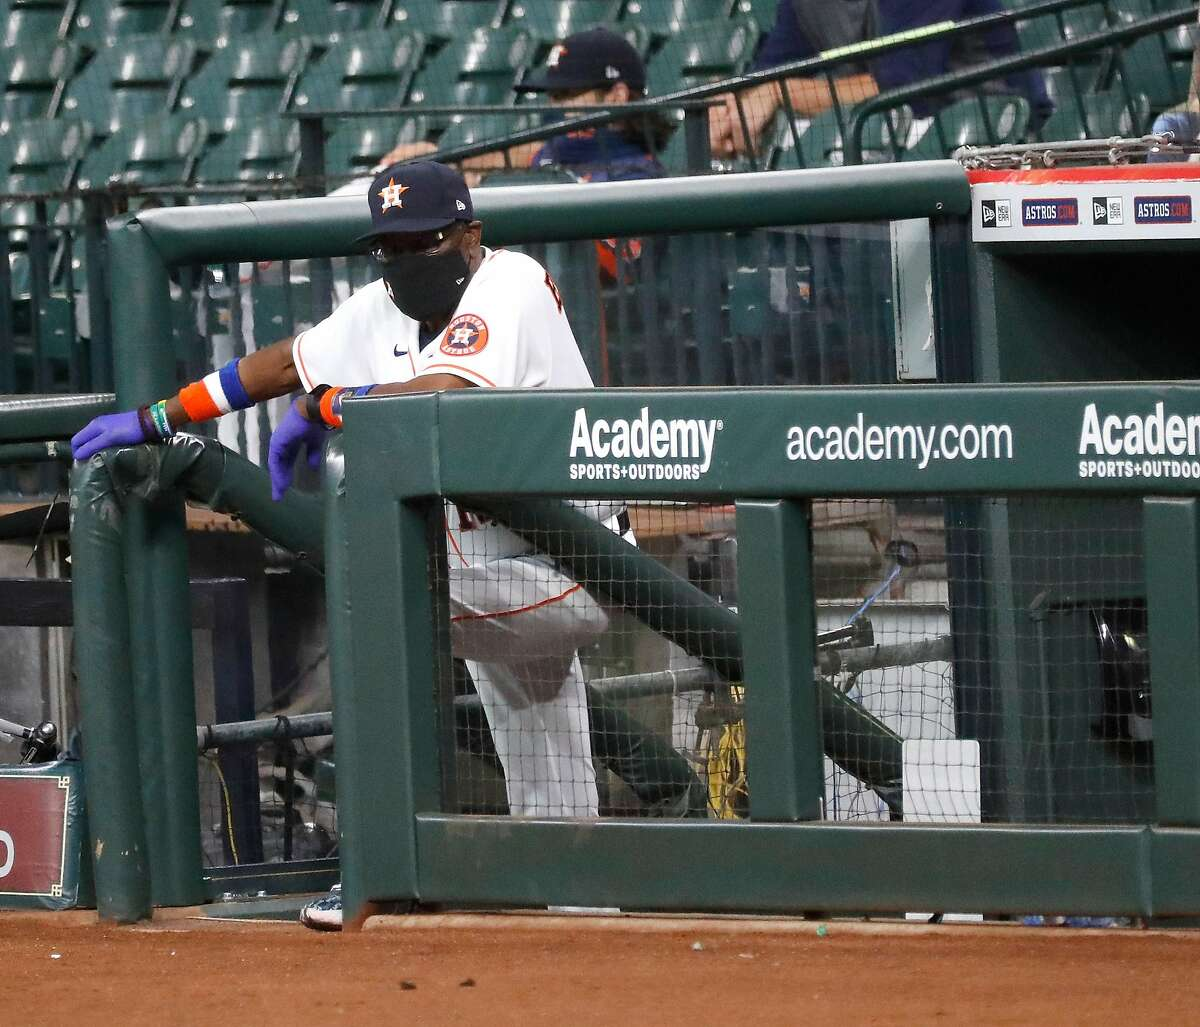 Houston Astros manager Dusty Baker at the end of the dugout during the third inning of an MLB baseball game at Minute Maid Park, Wednesday, August 12, 2020, in Houston.